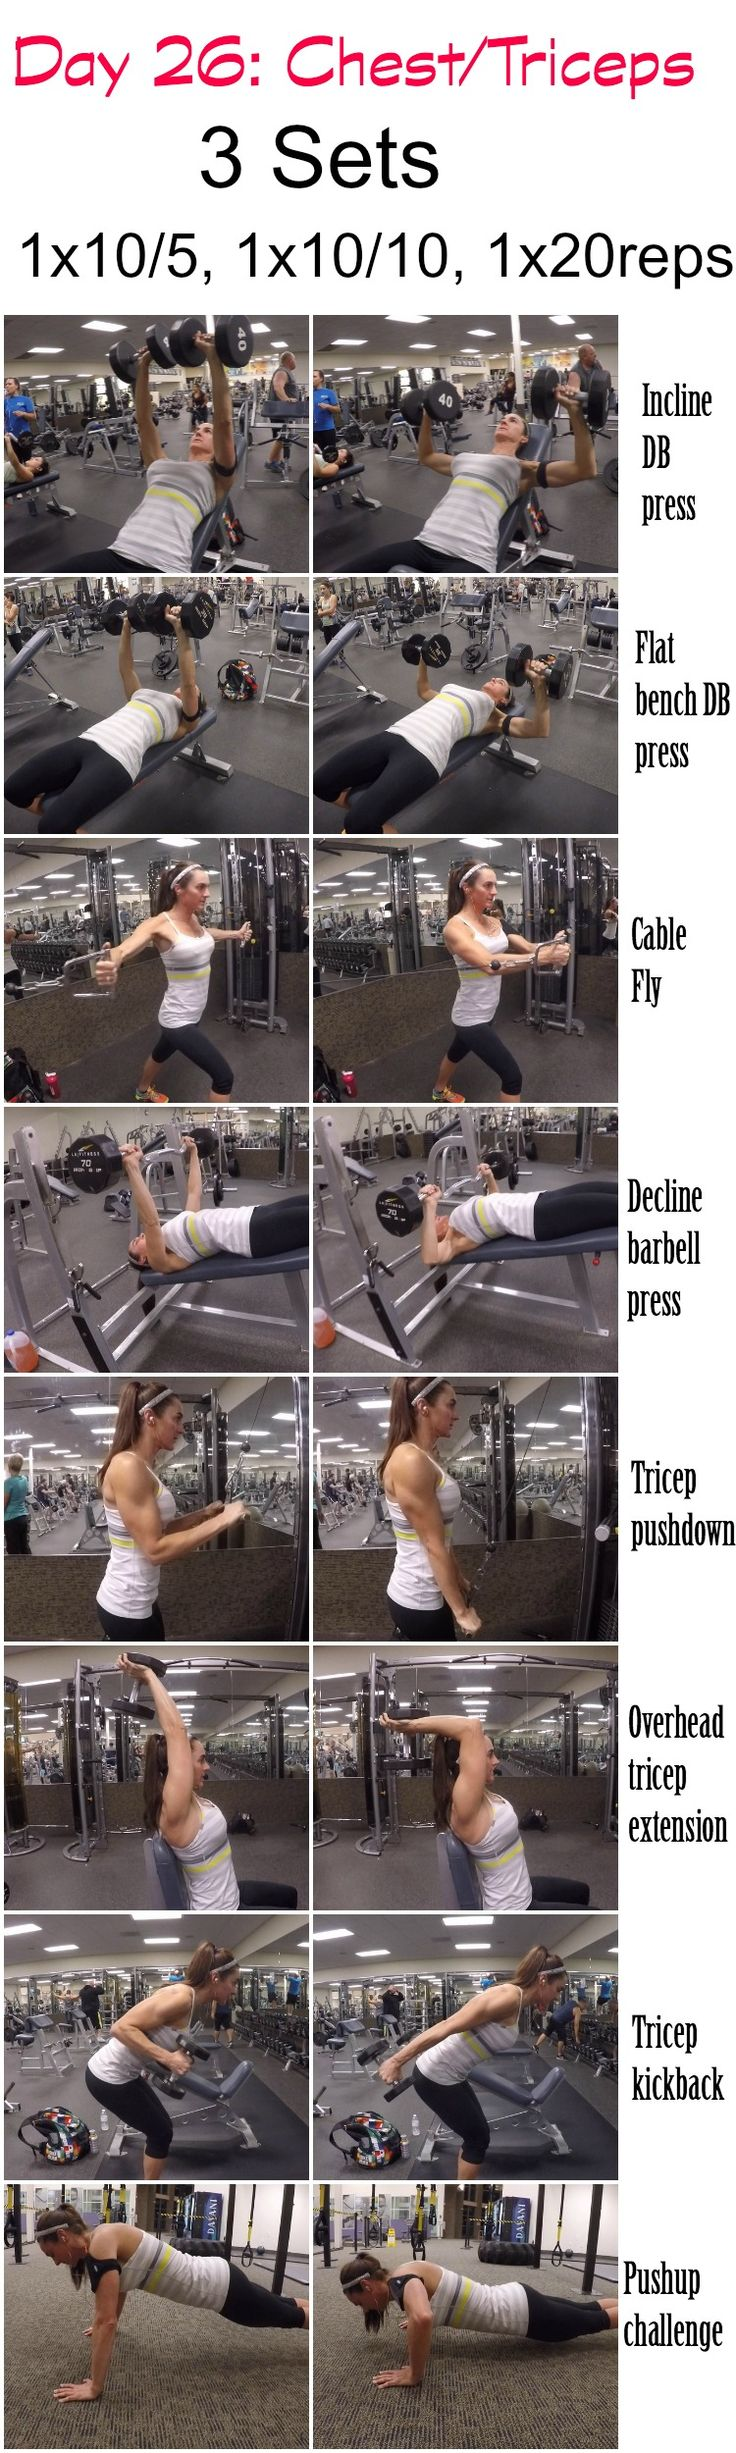 28 Days 2 Shred: Day 26-Chest/Triceps | Fitness Food Diva